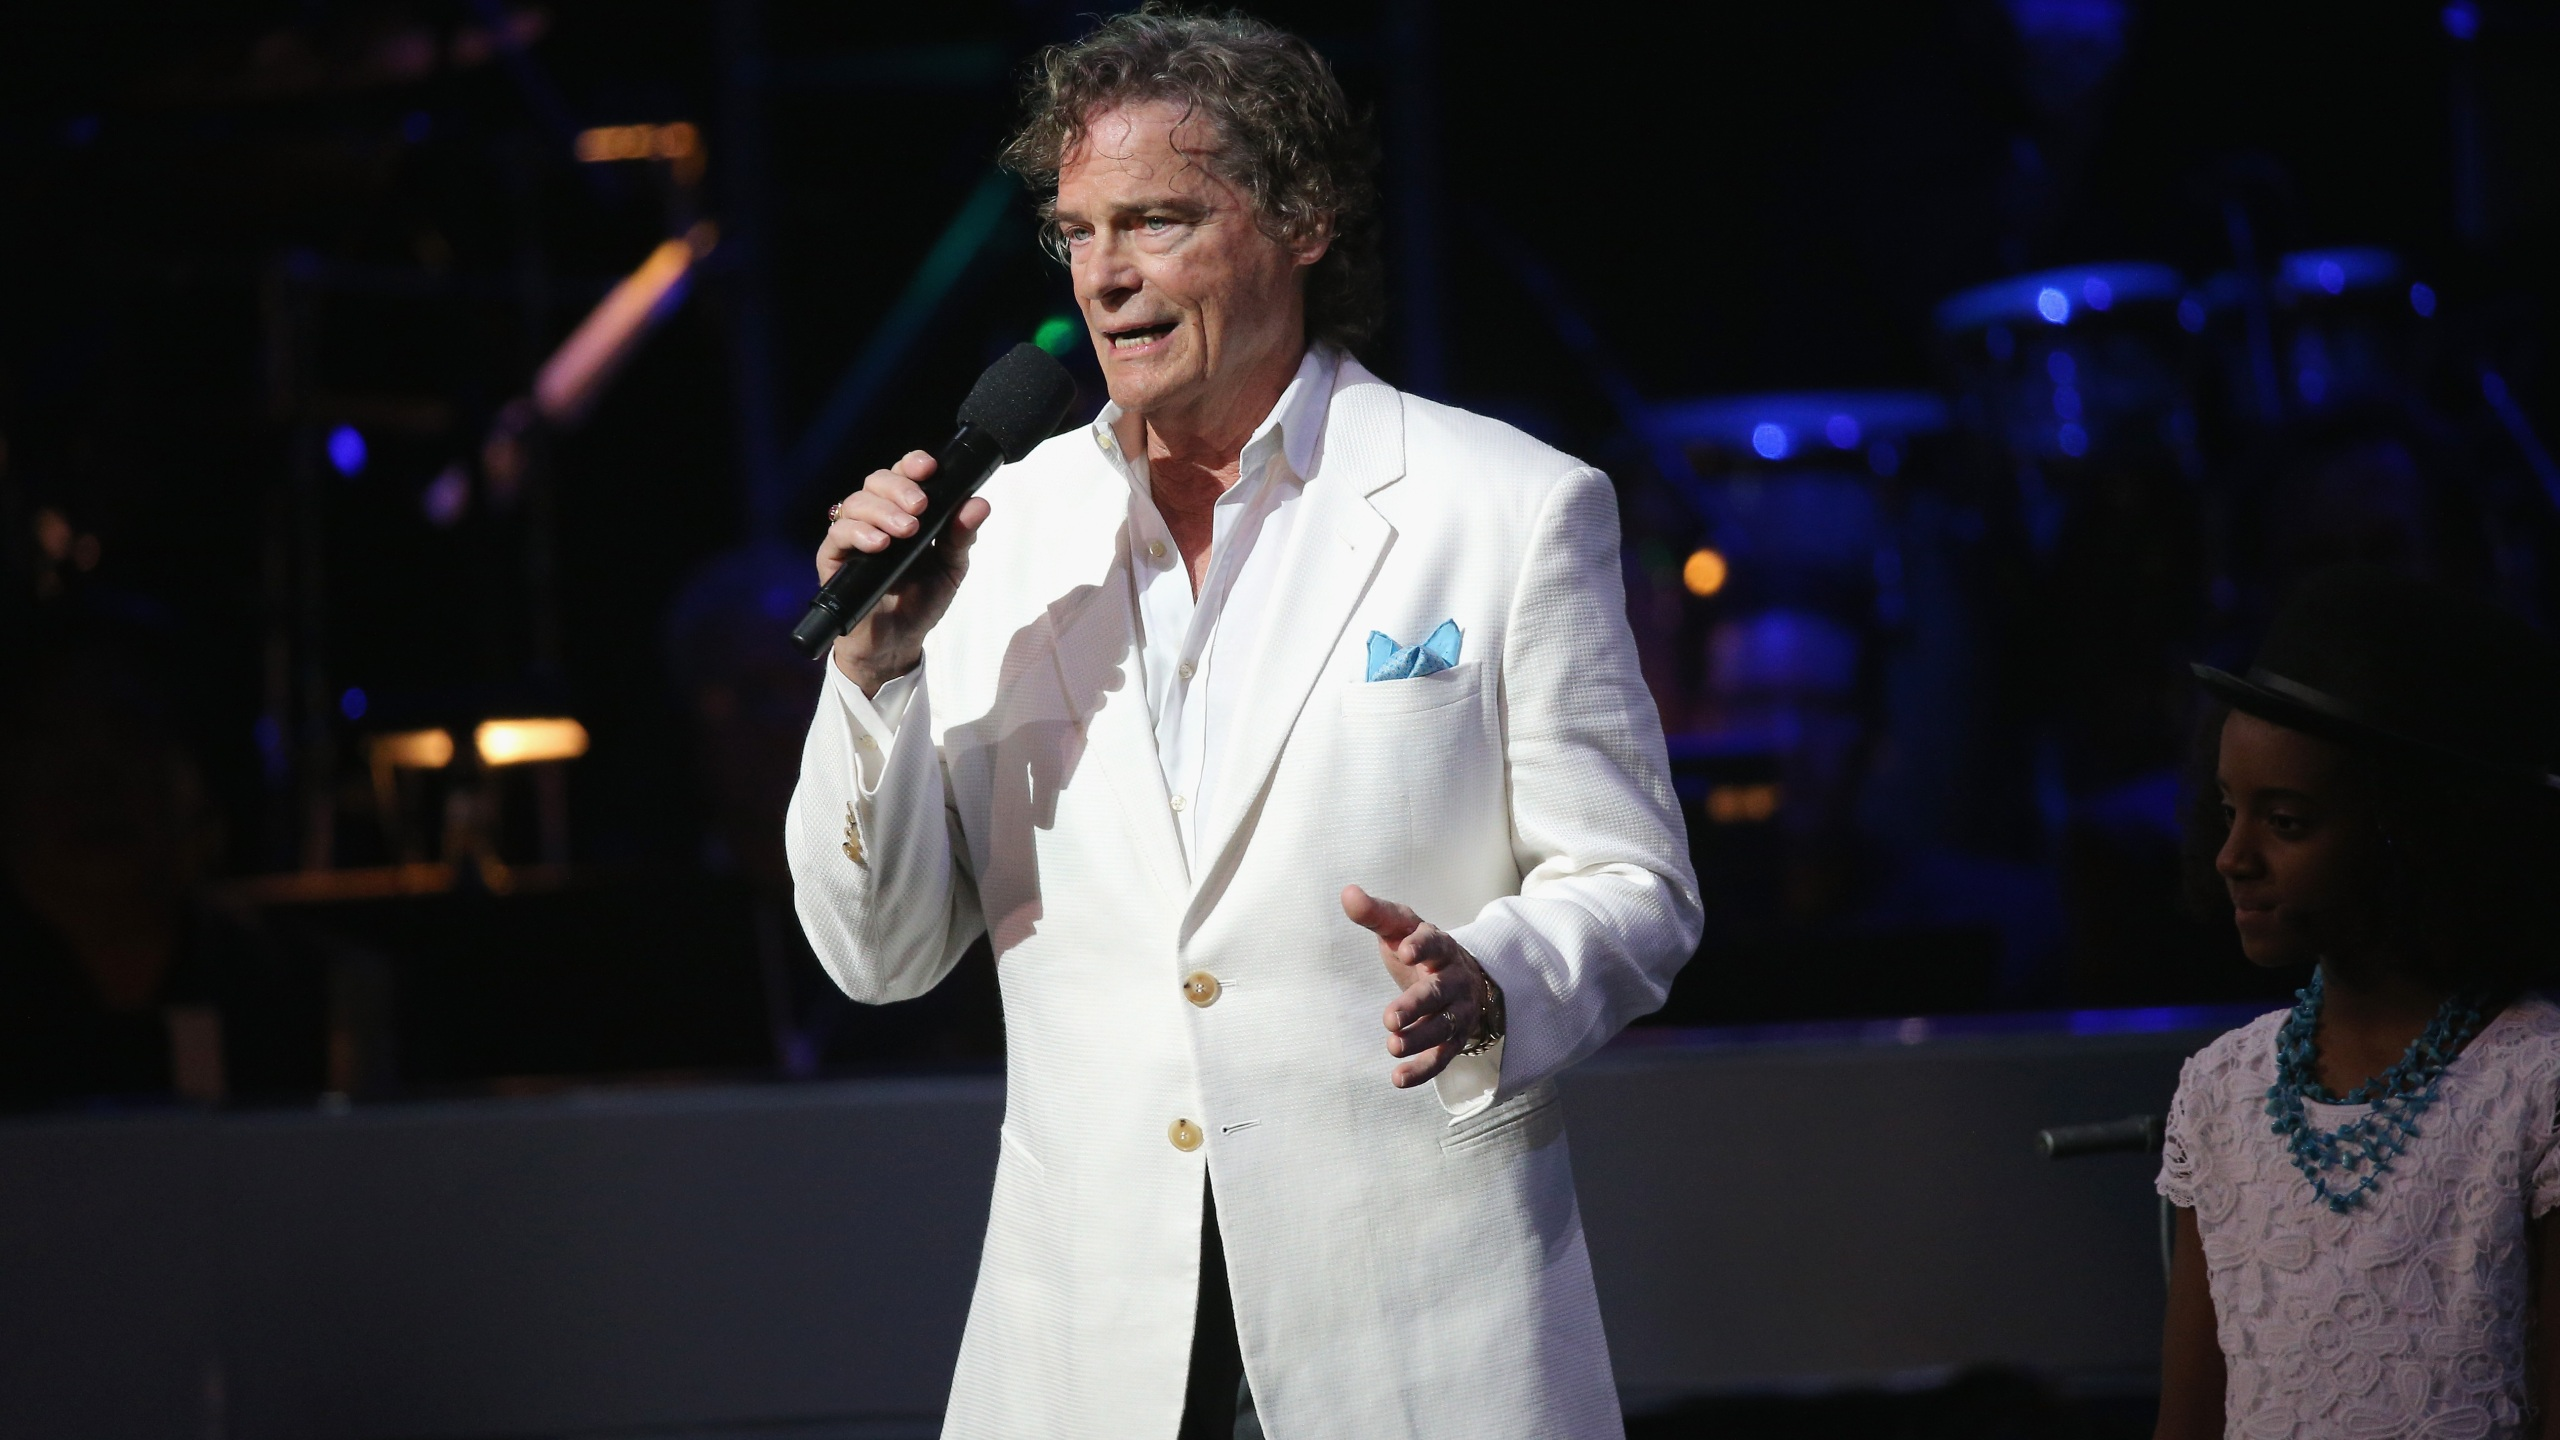 HOLLYWOOD, CA - MAY 14: Recording Artist B. J. Thomas performs onstage during the SeriousFun Children's Network 2015 Los Angeles Gala: An Evening Of SeriousFun celebrating the legacy of Paul Newman on May 14, 2015 in Hollywood, California. (Photo by Imeh Akpanudosen/Getty Images for SeriousFun Children's Network)